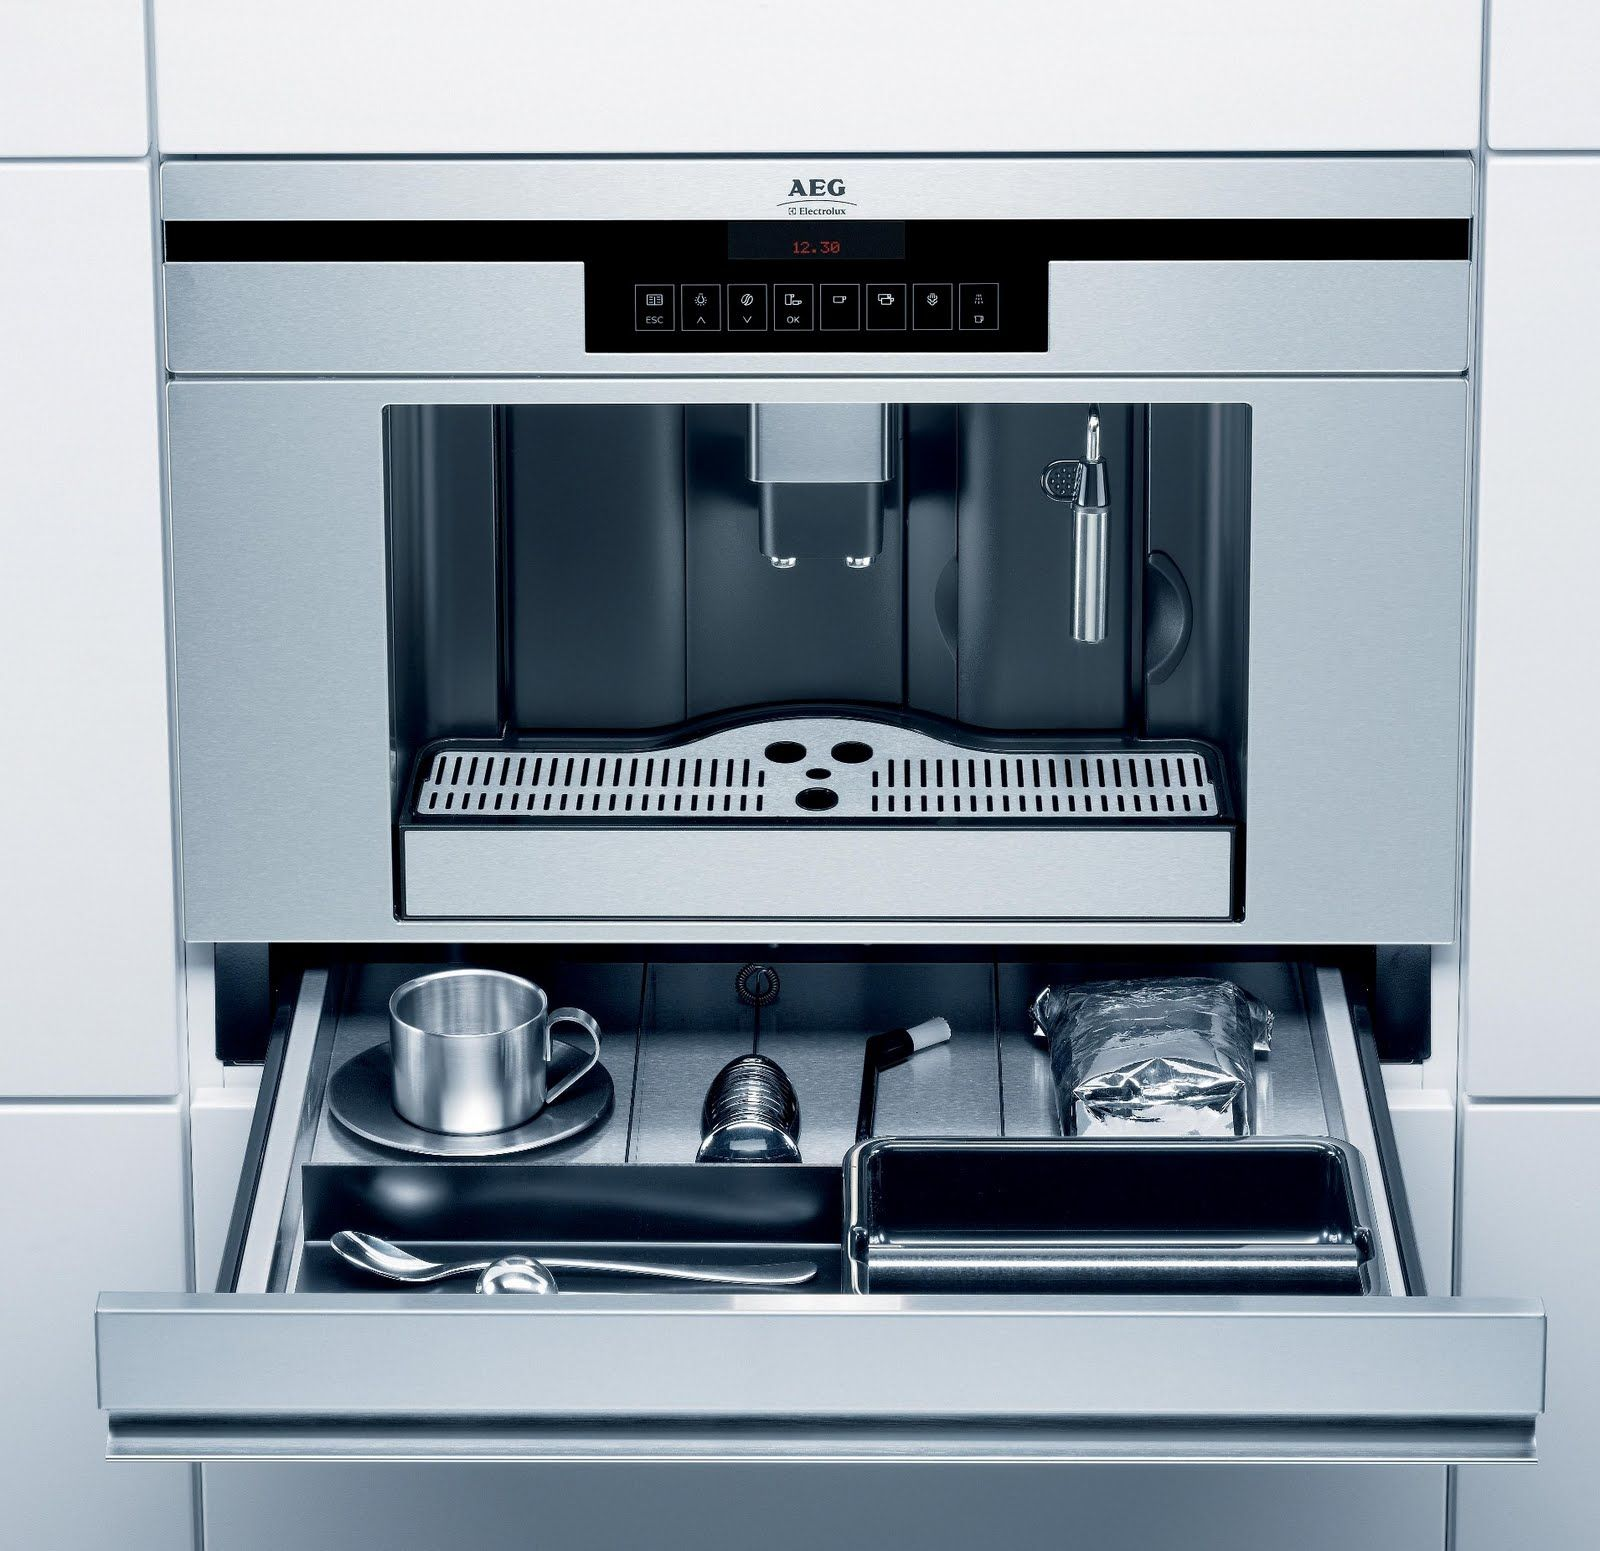 AEG Electrolux PE3810 M Fully Integrated Coffee Maker Amazing Pictures